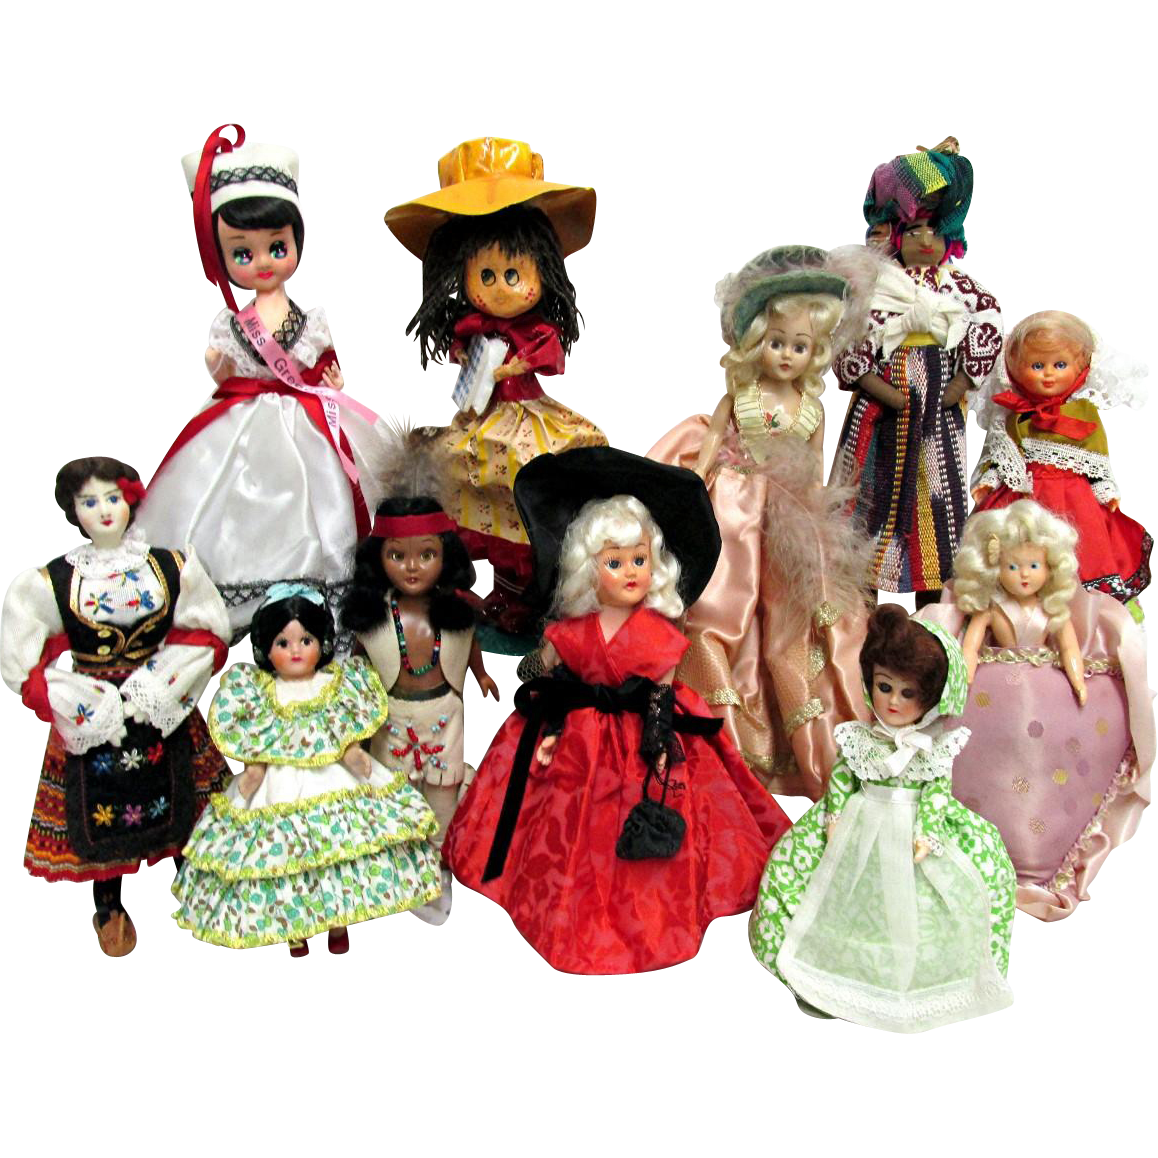 Doll Collection 11 Souvenir, International and Ethic